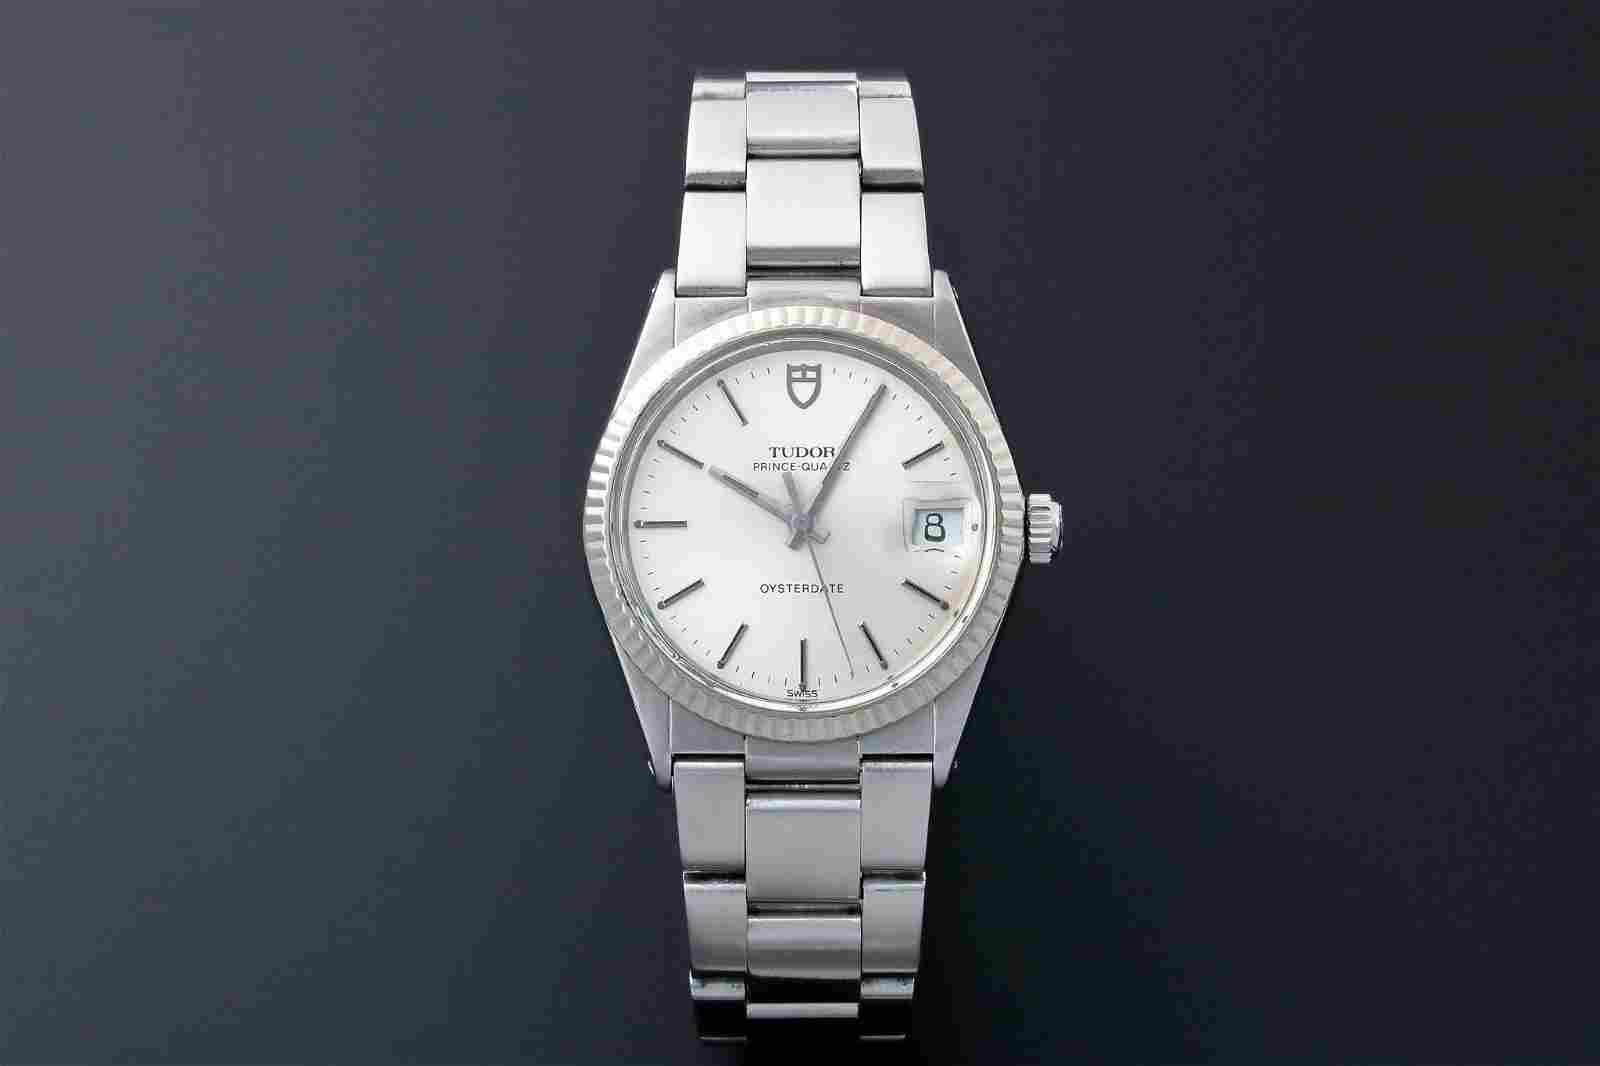 Tudor Prince Quartz Oysterdate 91534 Watch